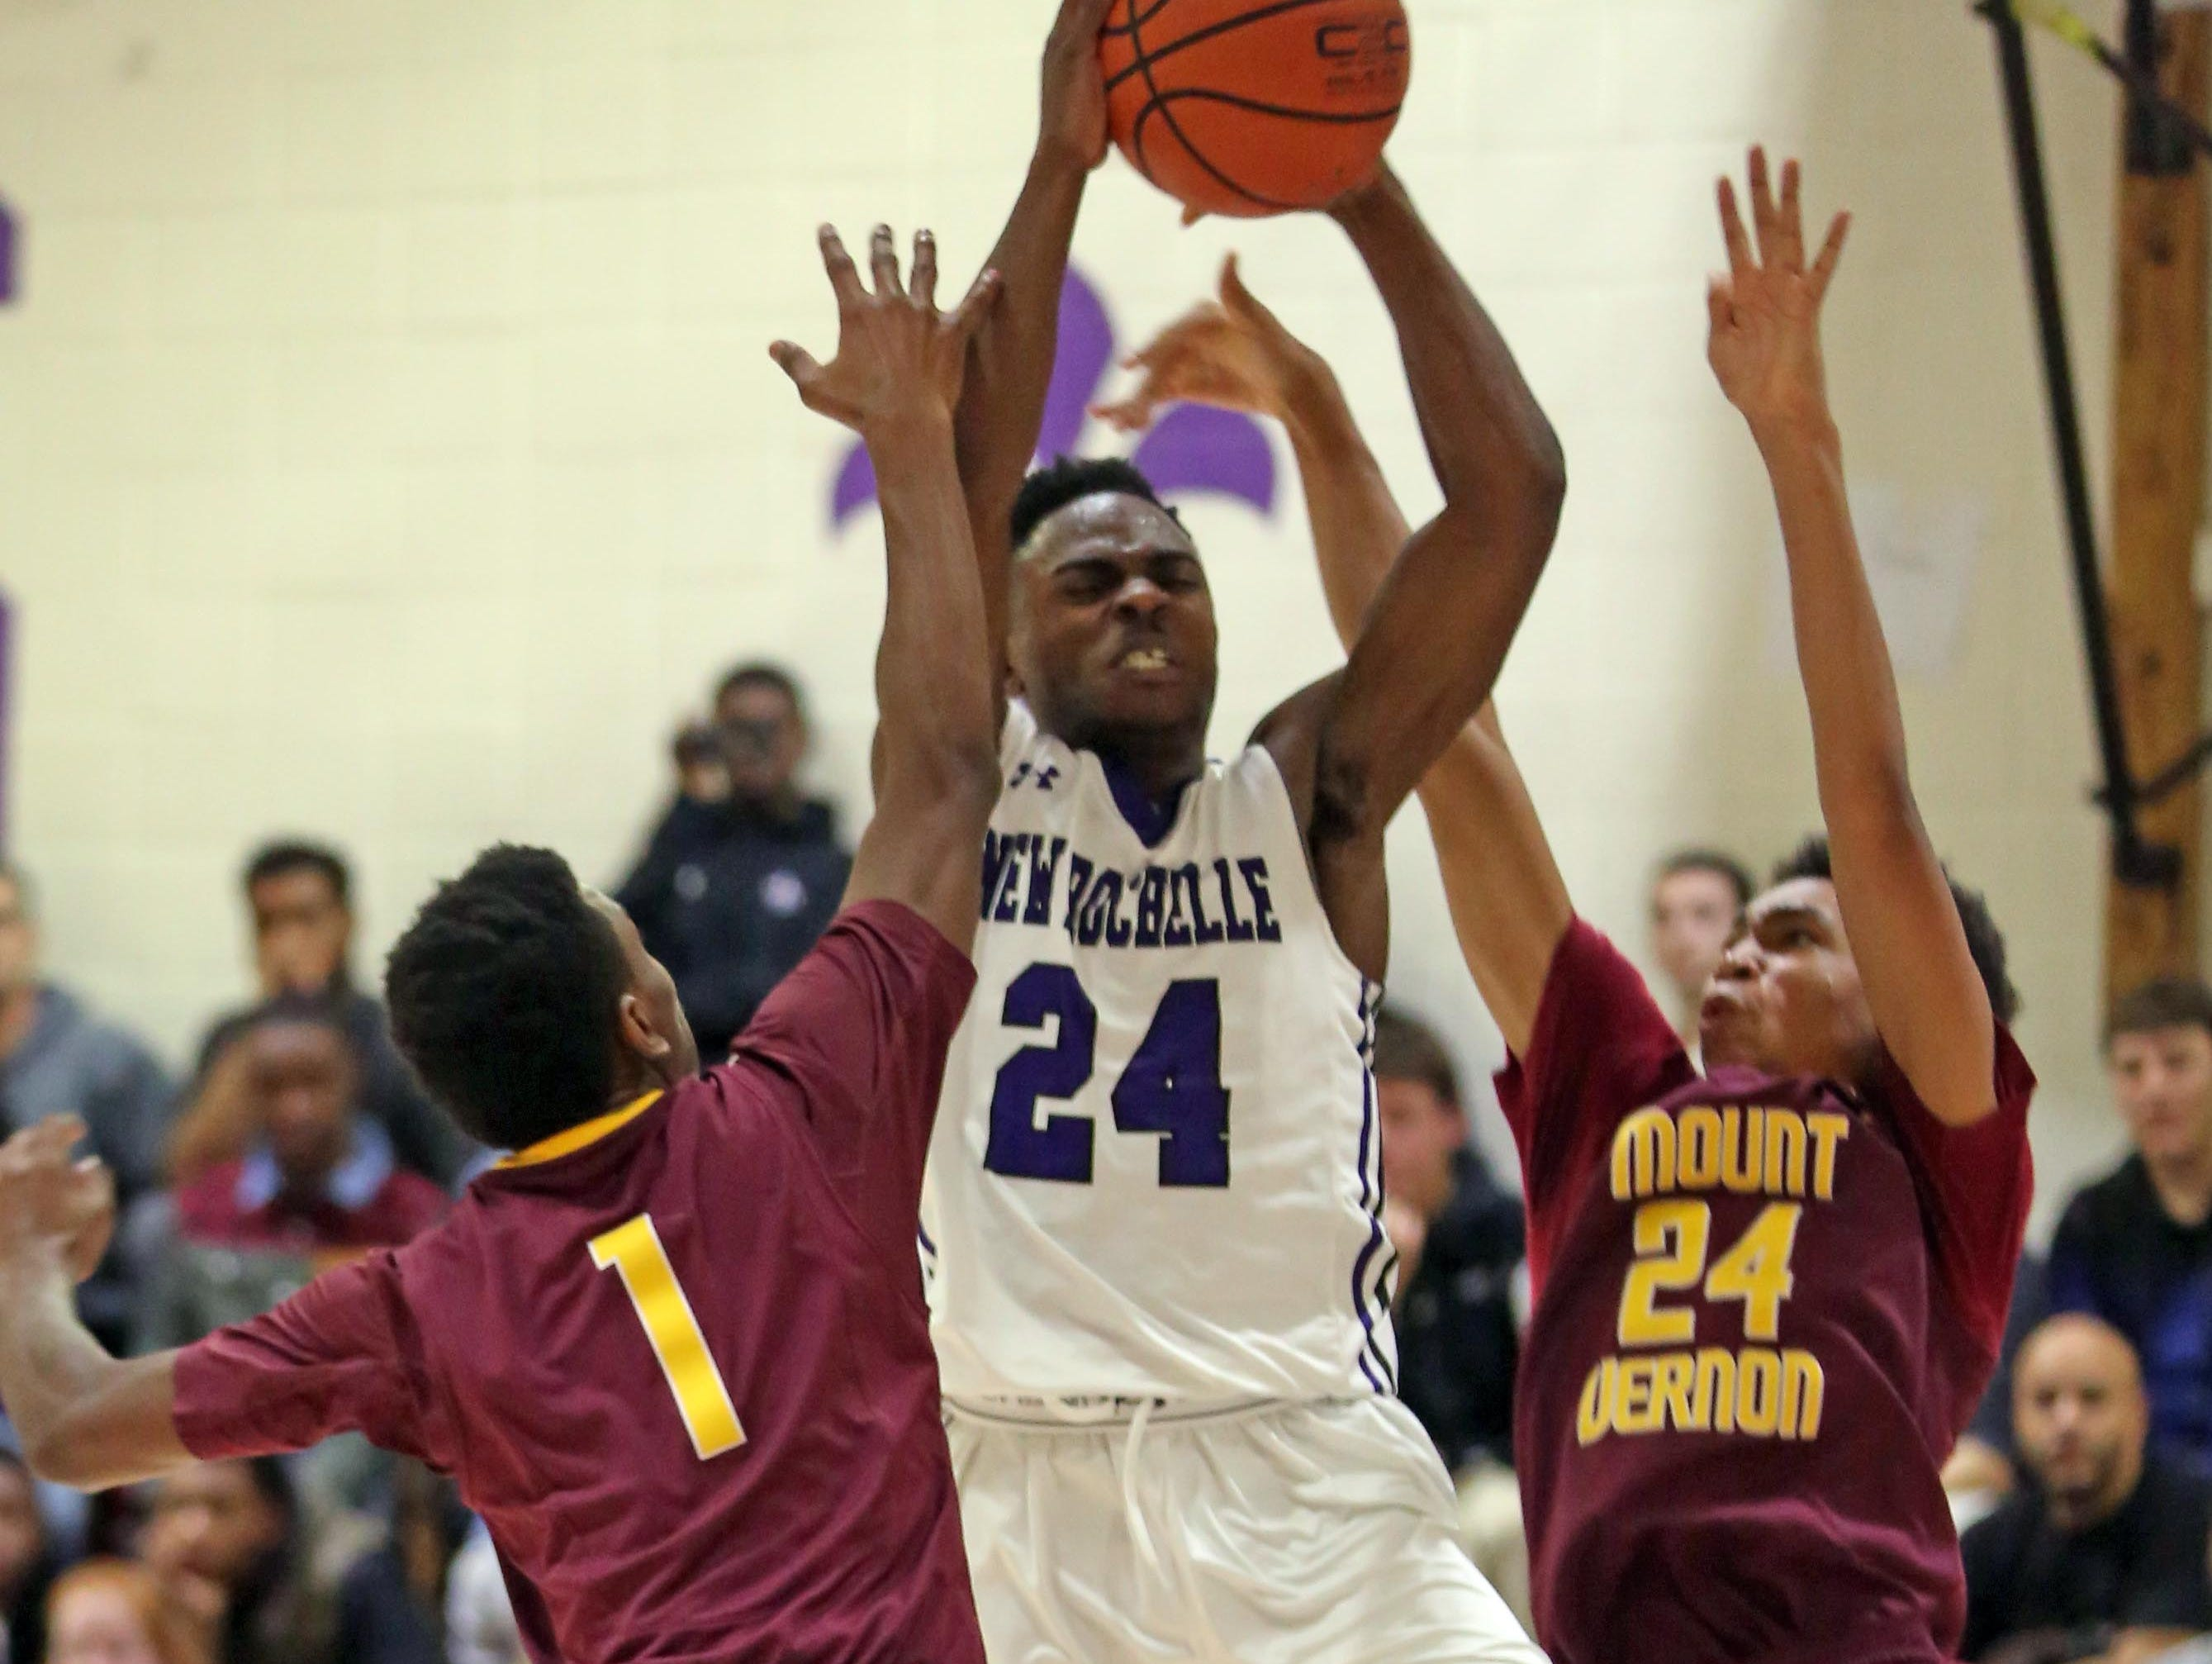 Jamel Wallace (24) of New Rochelle gets his shot block by Jared Young (1) and Jasen Stanley (24) of Mount Vernon during game action at New Rochelle High School on Jan 4, 2016. Mount Vernon defeated New Rochelle 72-63.